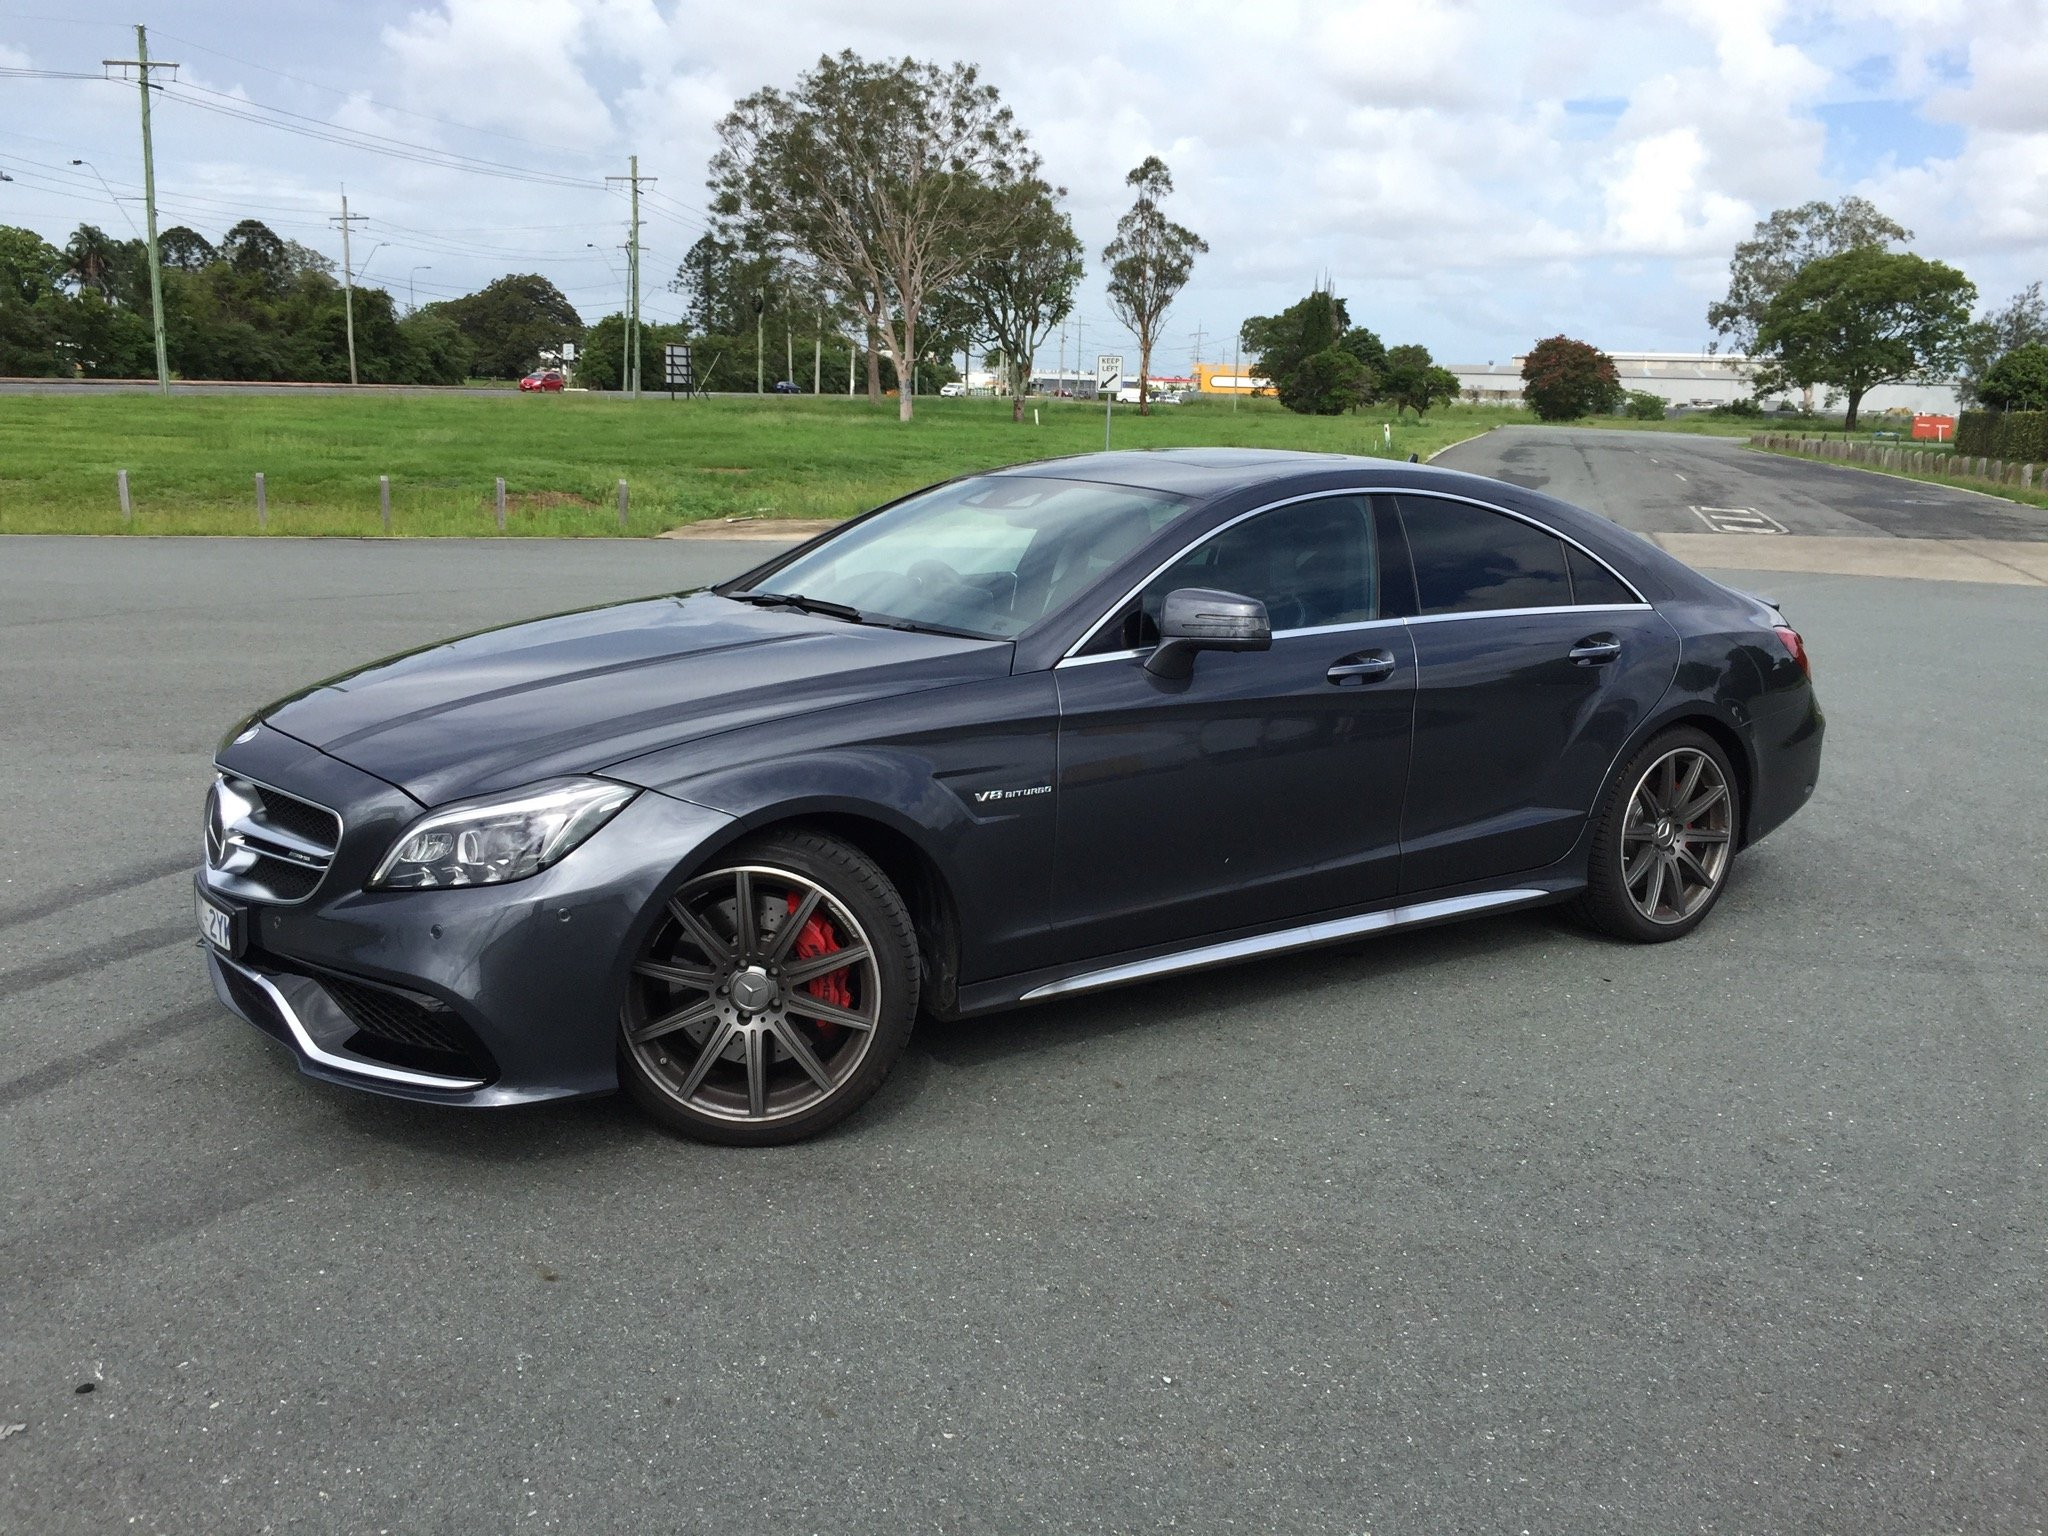 2015 mercedes benz cls 63 amg s review - Mercedes Amg Cls63 2015